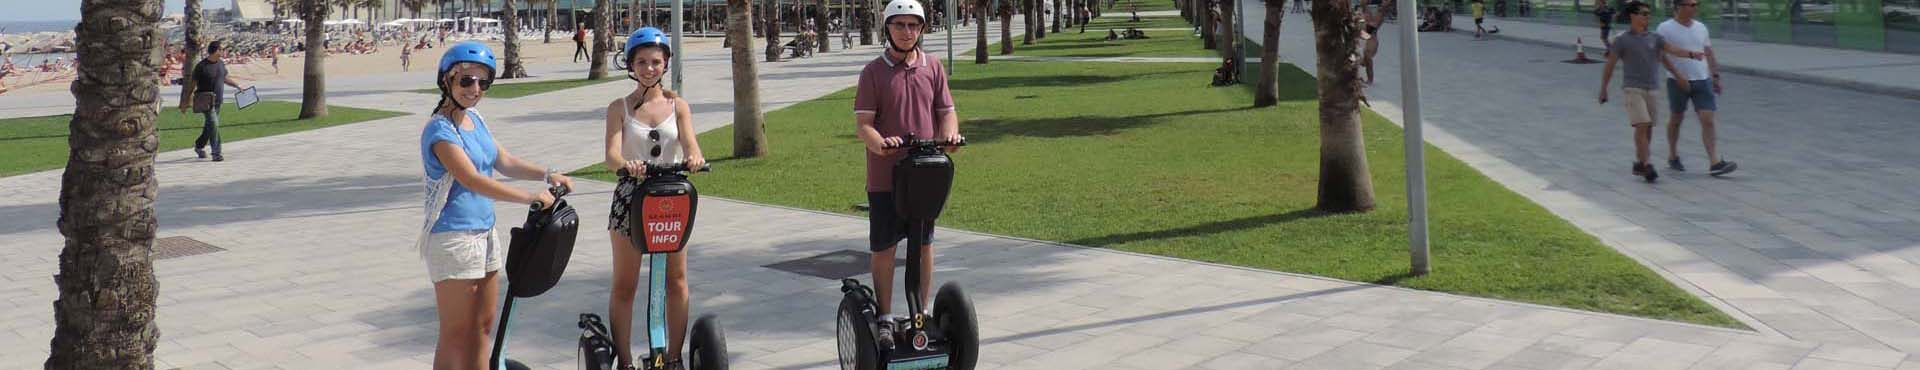 Barcelona segway tours reviews there